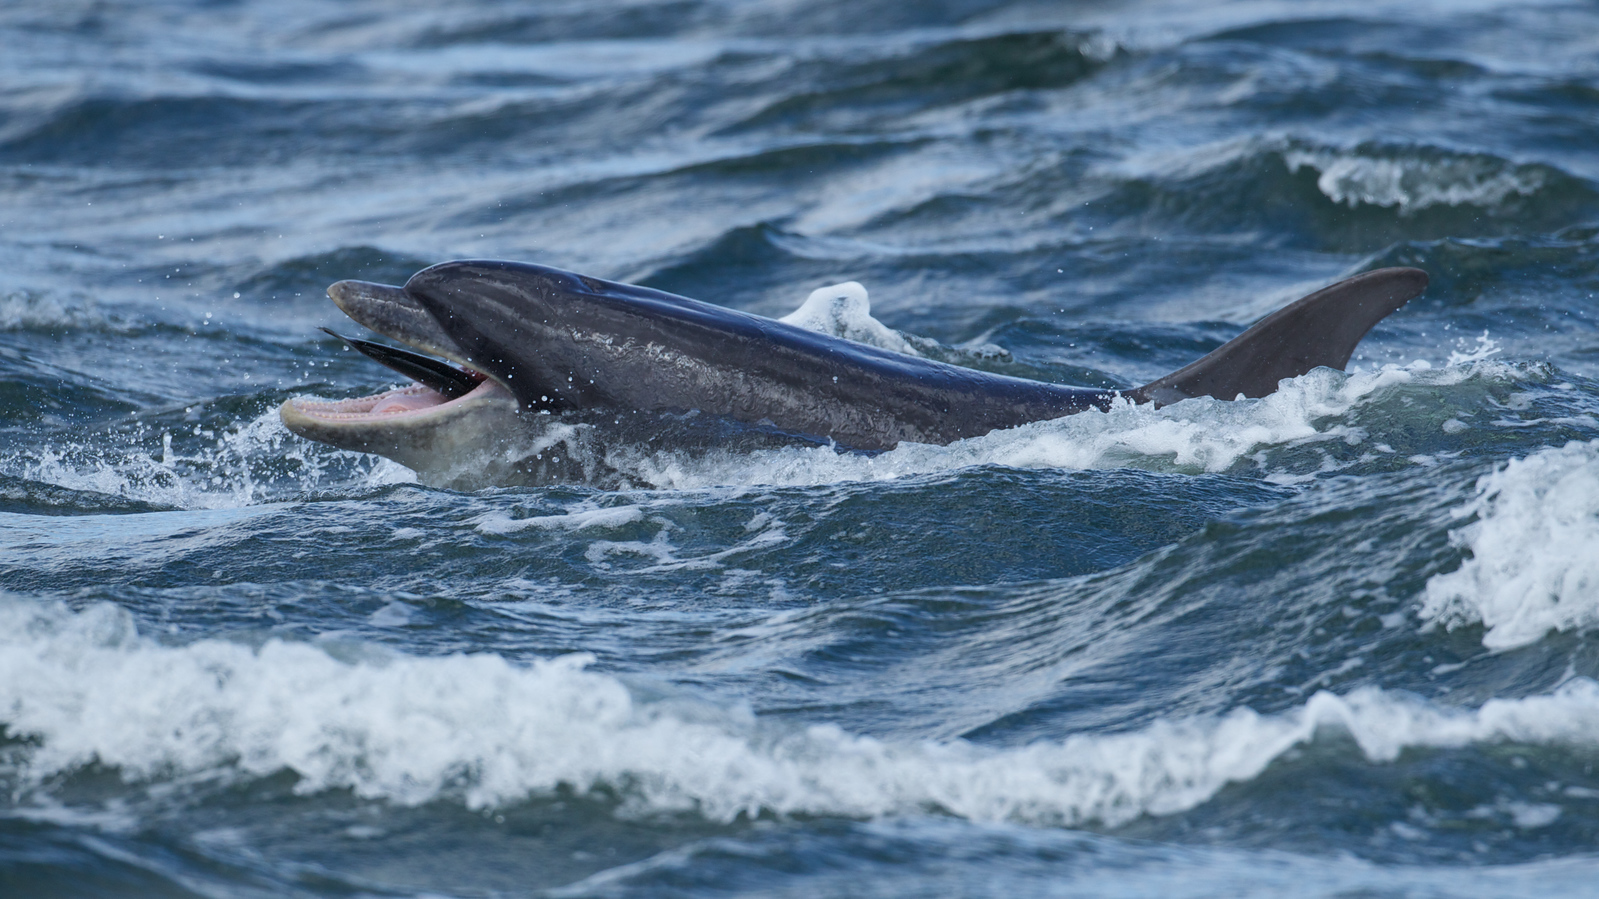 Dolphin toying with prey